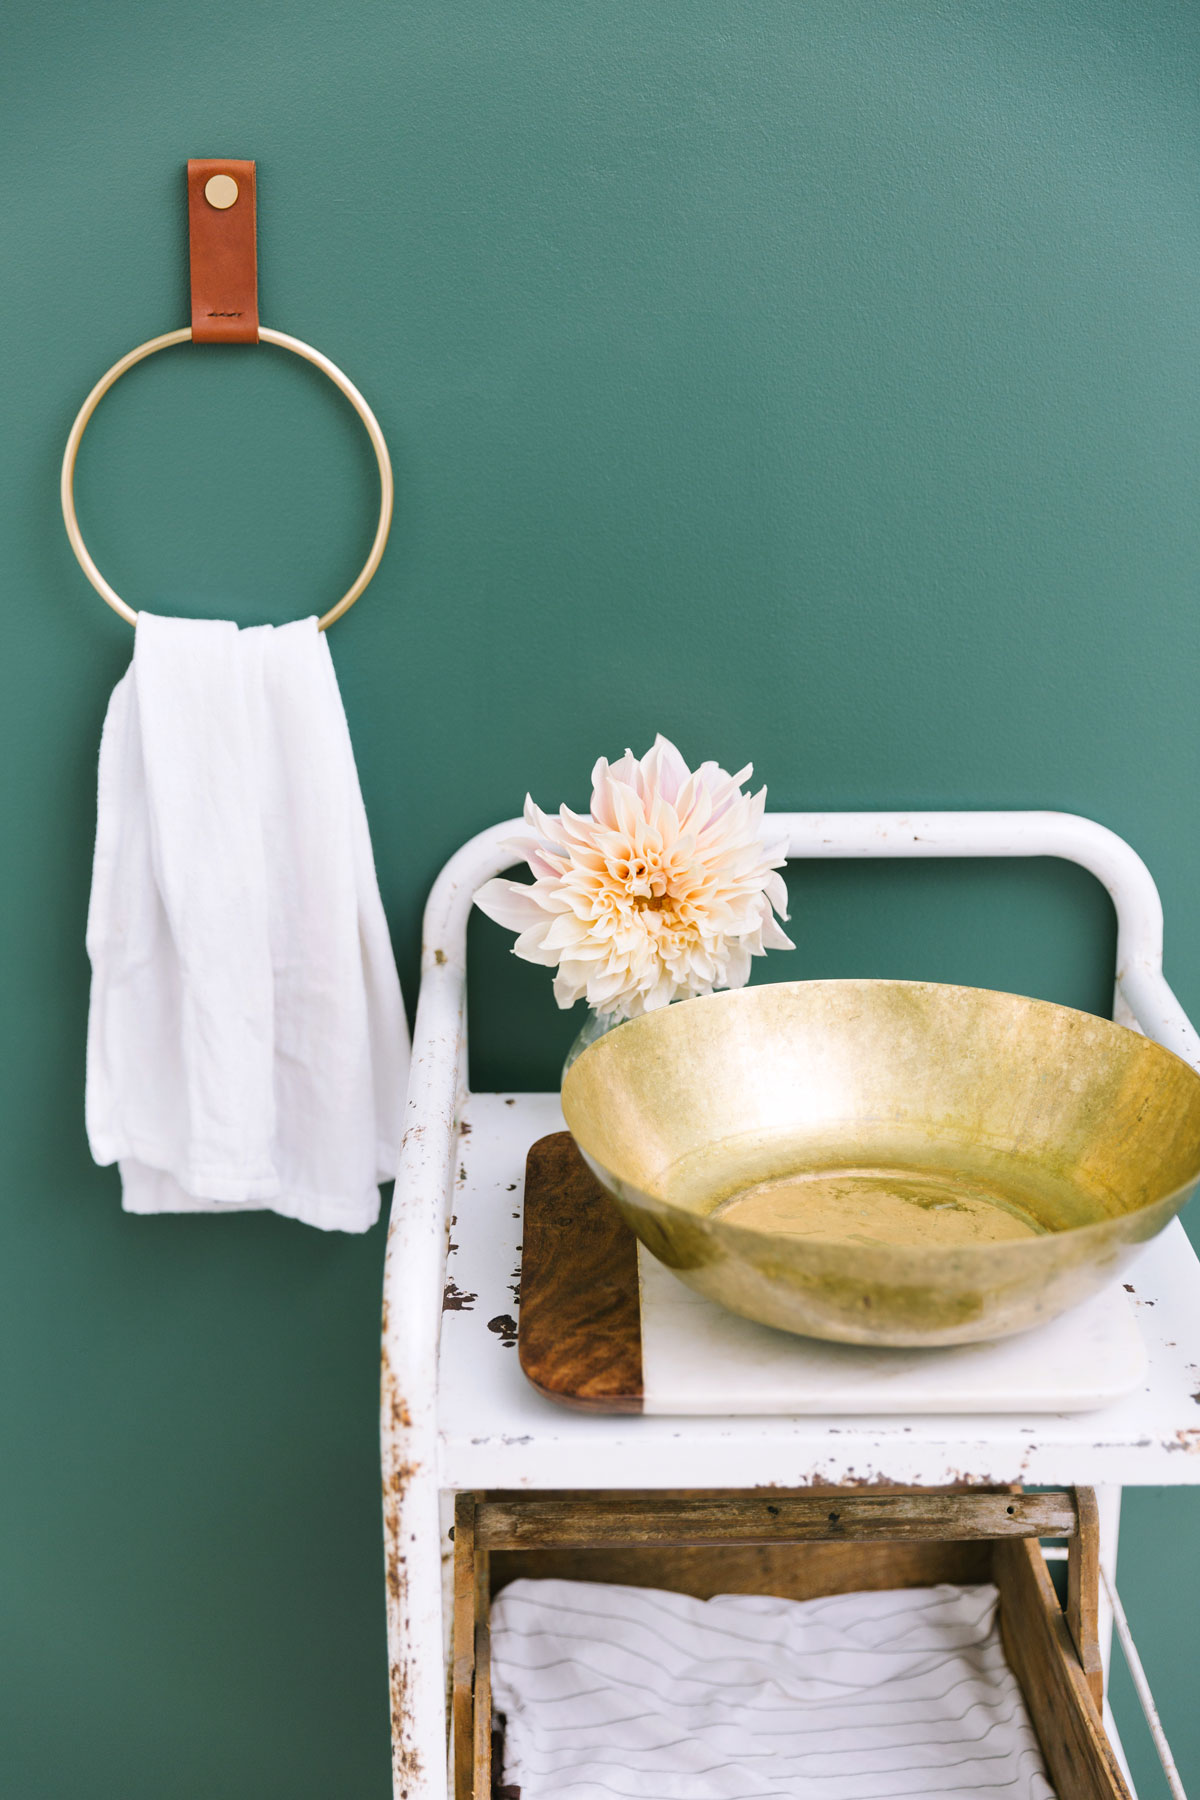 A hanging towel, golden bowl, and white stand ready for a skincare ritual.